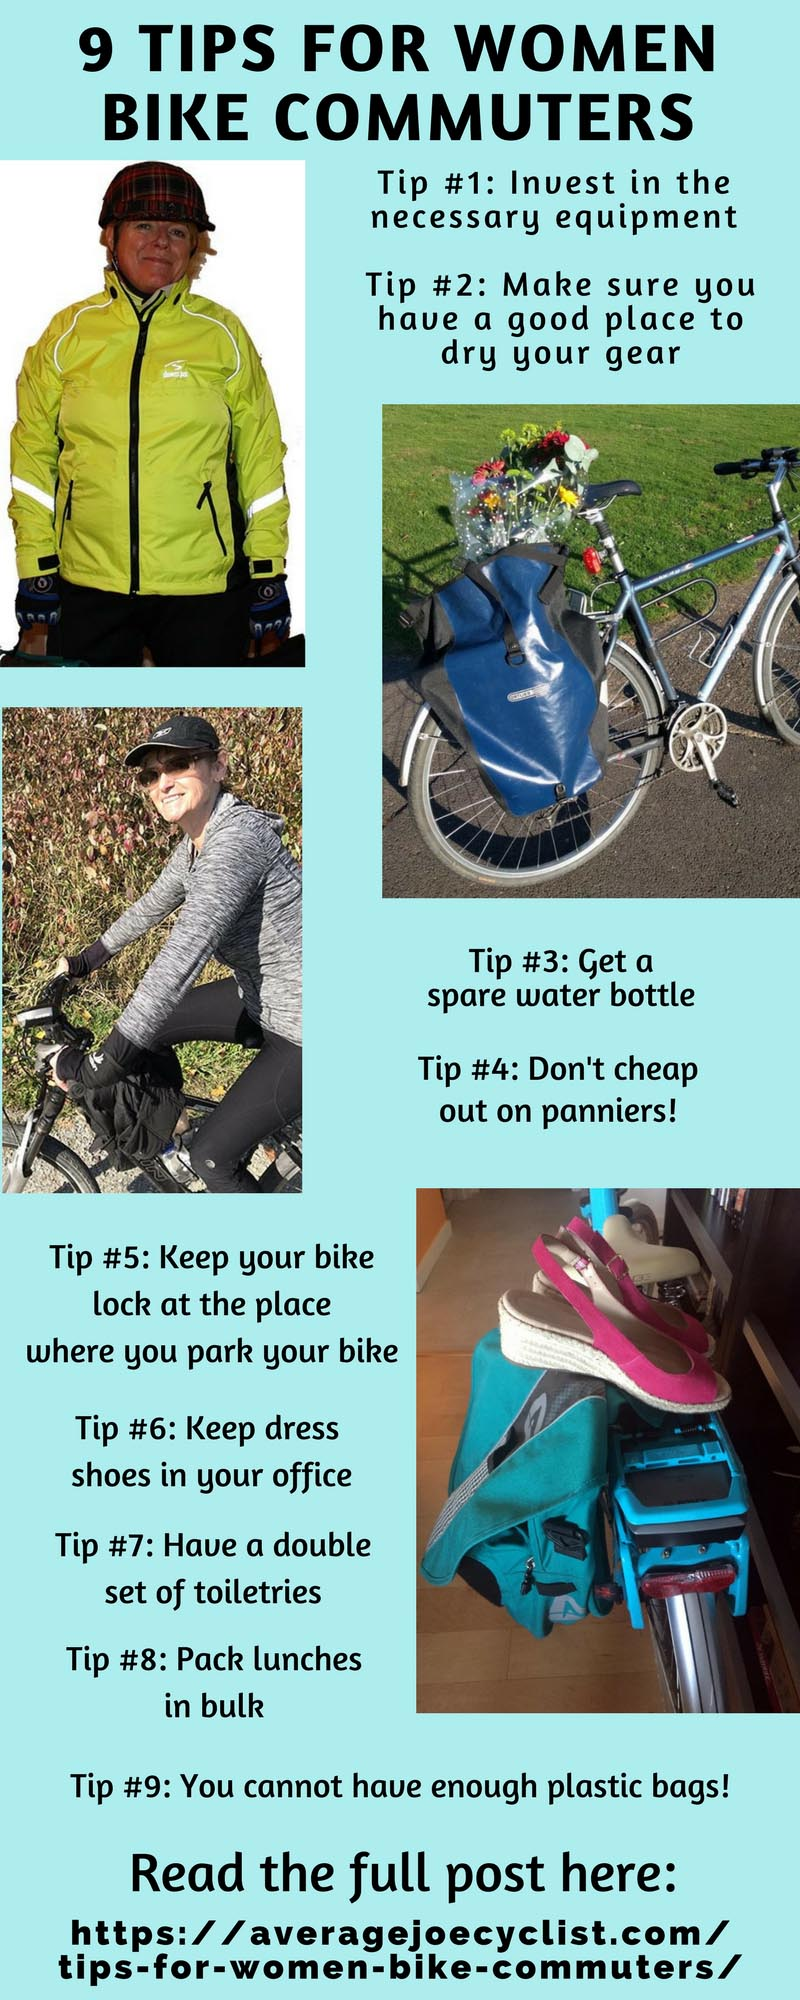 9 Tips for Women Bike Commuters